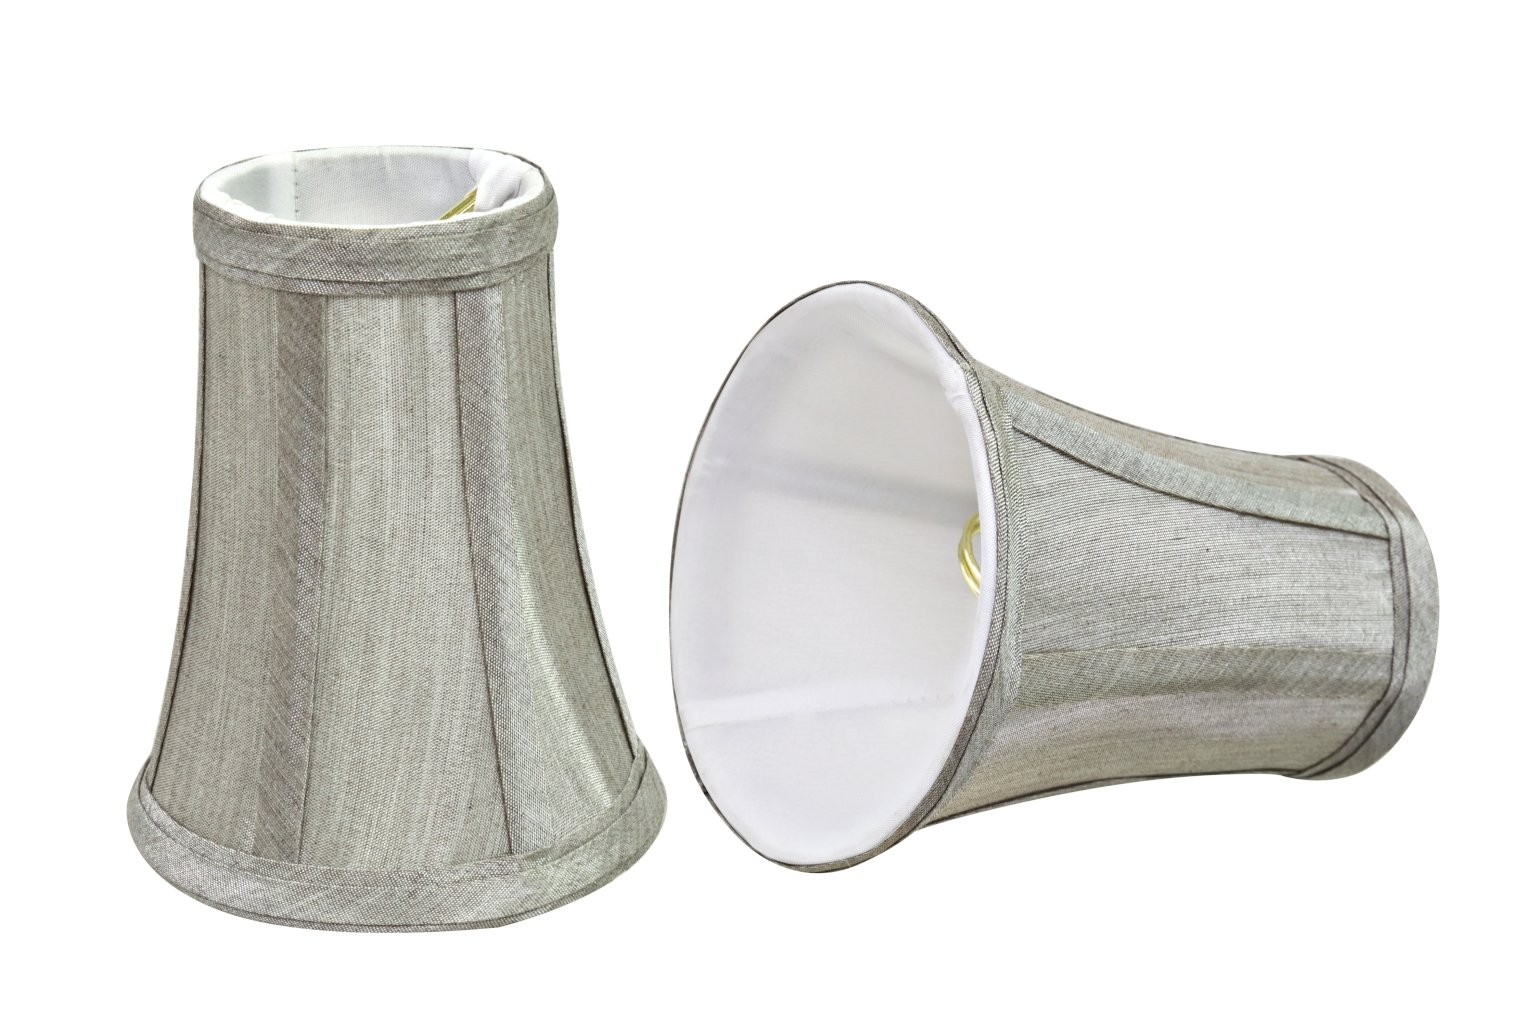 Aspen Creative 30246-2 Small Bell Shape Chandelier Clip-on Lamp Shade Set with Transitional Design 4'' Bottom Width (2 1) (2 Pack), 2 1/2'' x 4'' x 5'', Silver-Grey